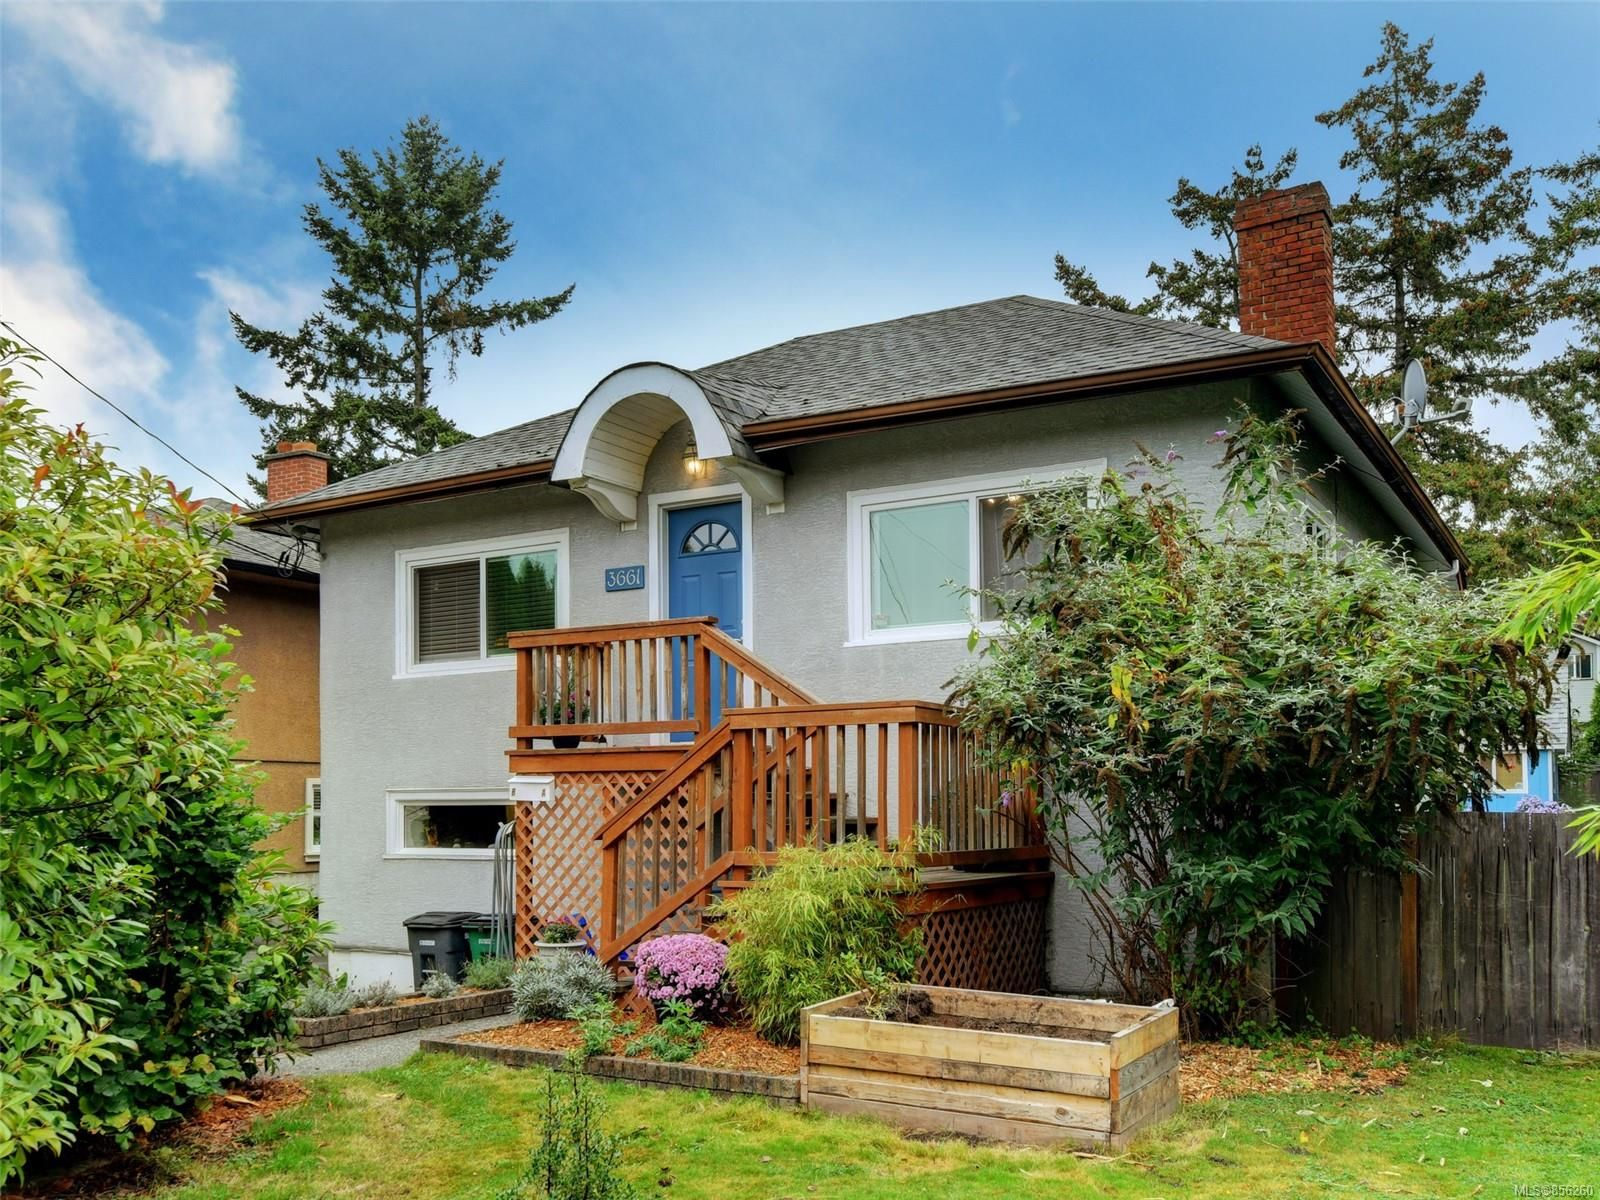 Main Photo: 3661 Savannah Ave in : SE Swan Lake House for sale (Saanich East)  : MLS®# 856260